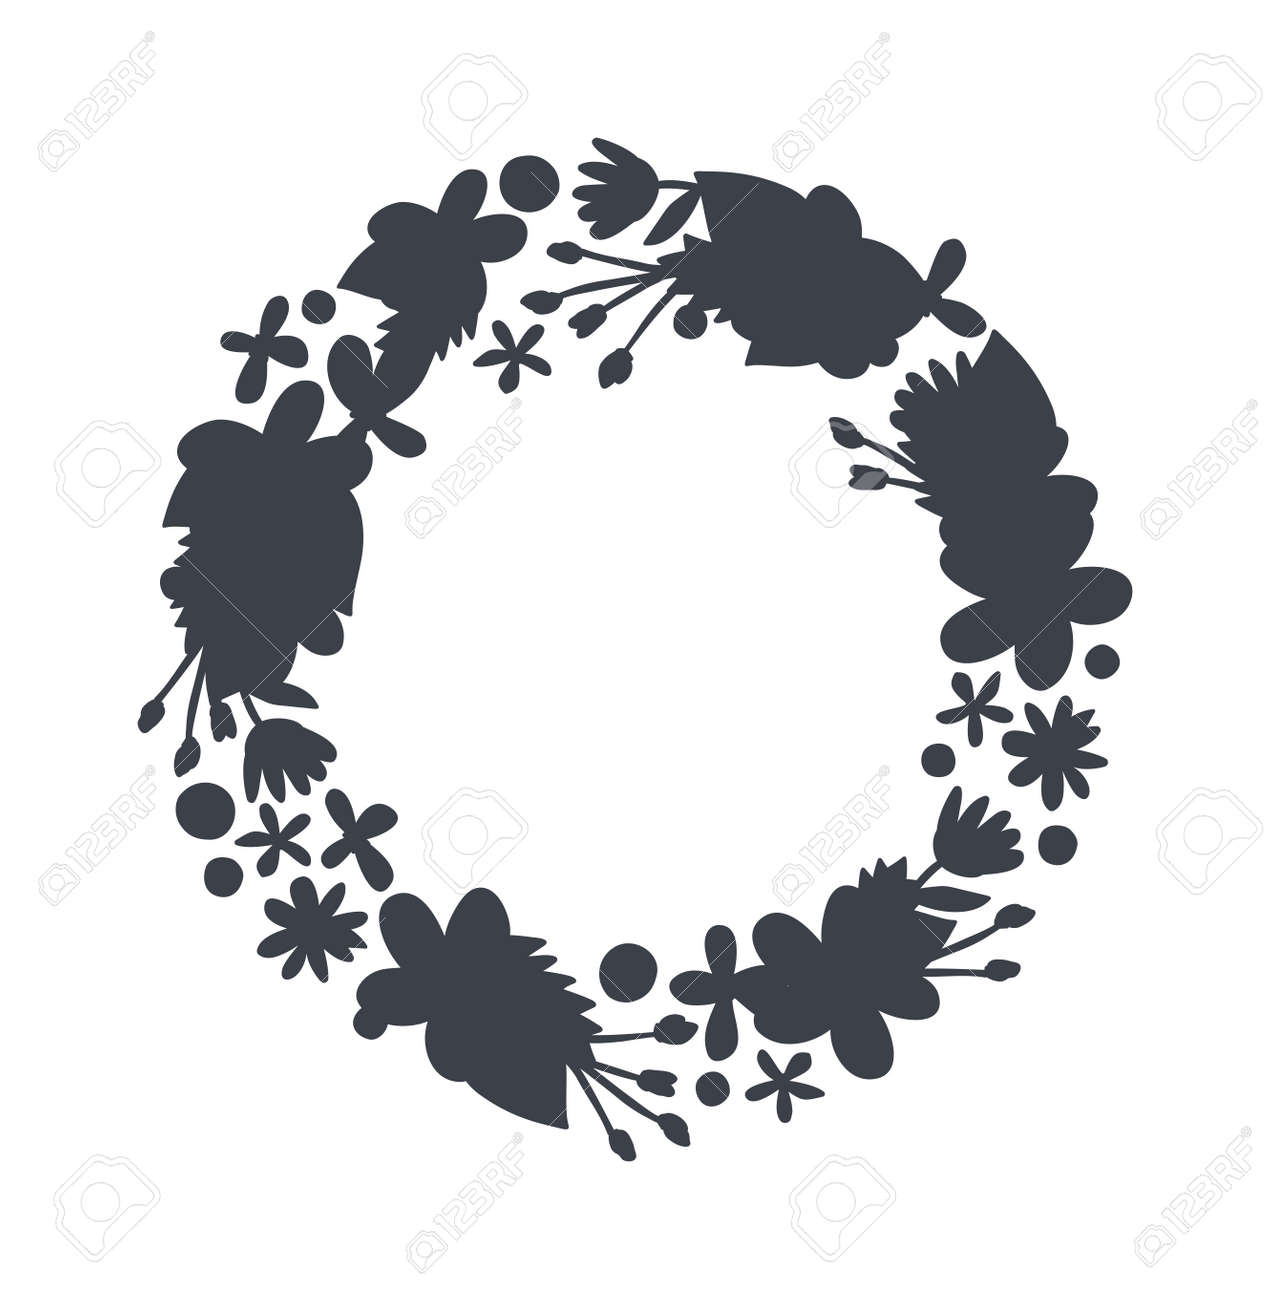 Spring Black Wreath Frame And Vintage Silhouette Design Vector Circular Floral Wreaths With